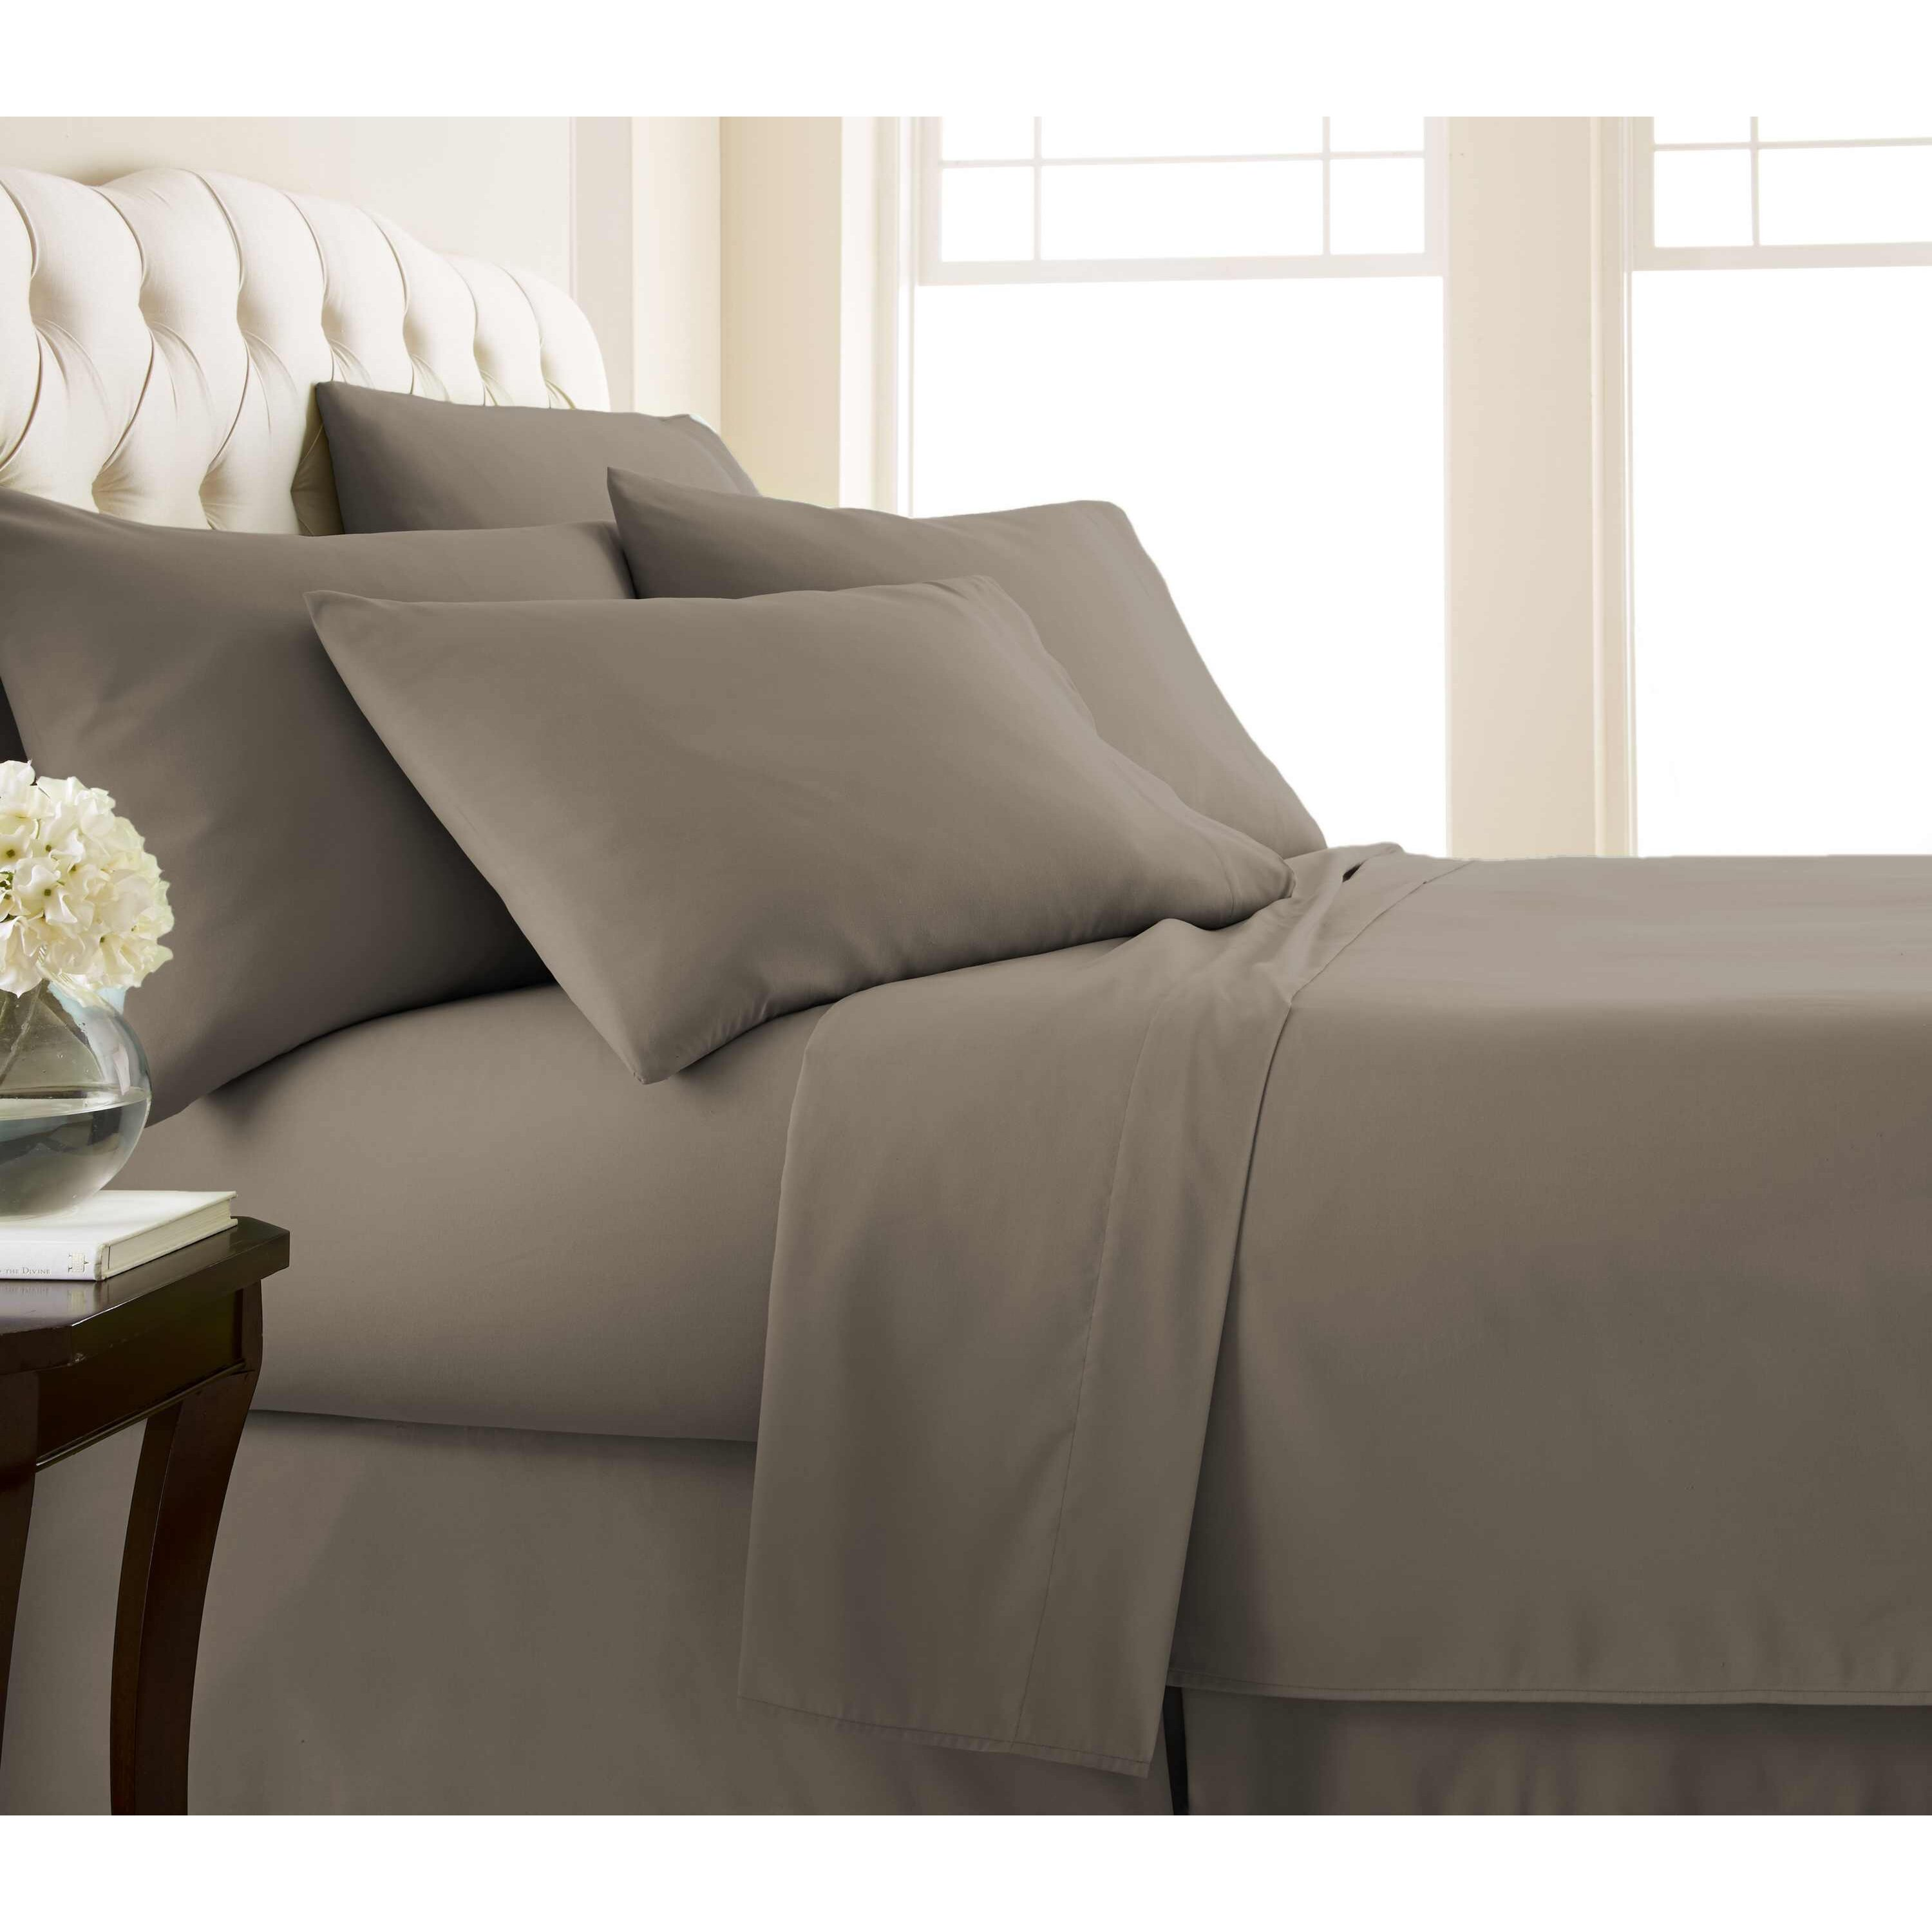 Extra deep pocket queen fitted sheets - Charlton Home Reg Berrylawn Extra Deep Pocket Sheet Set